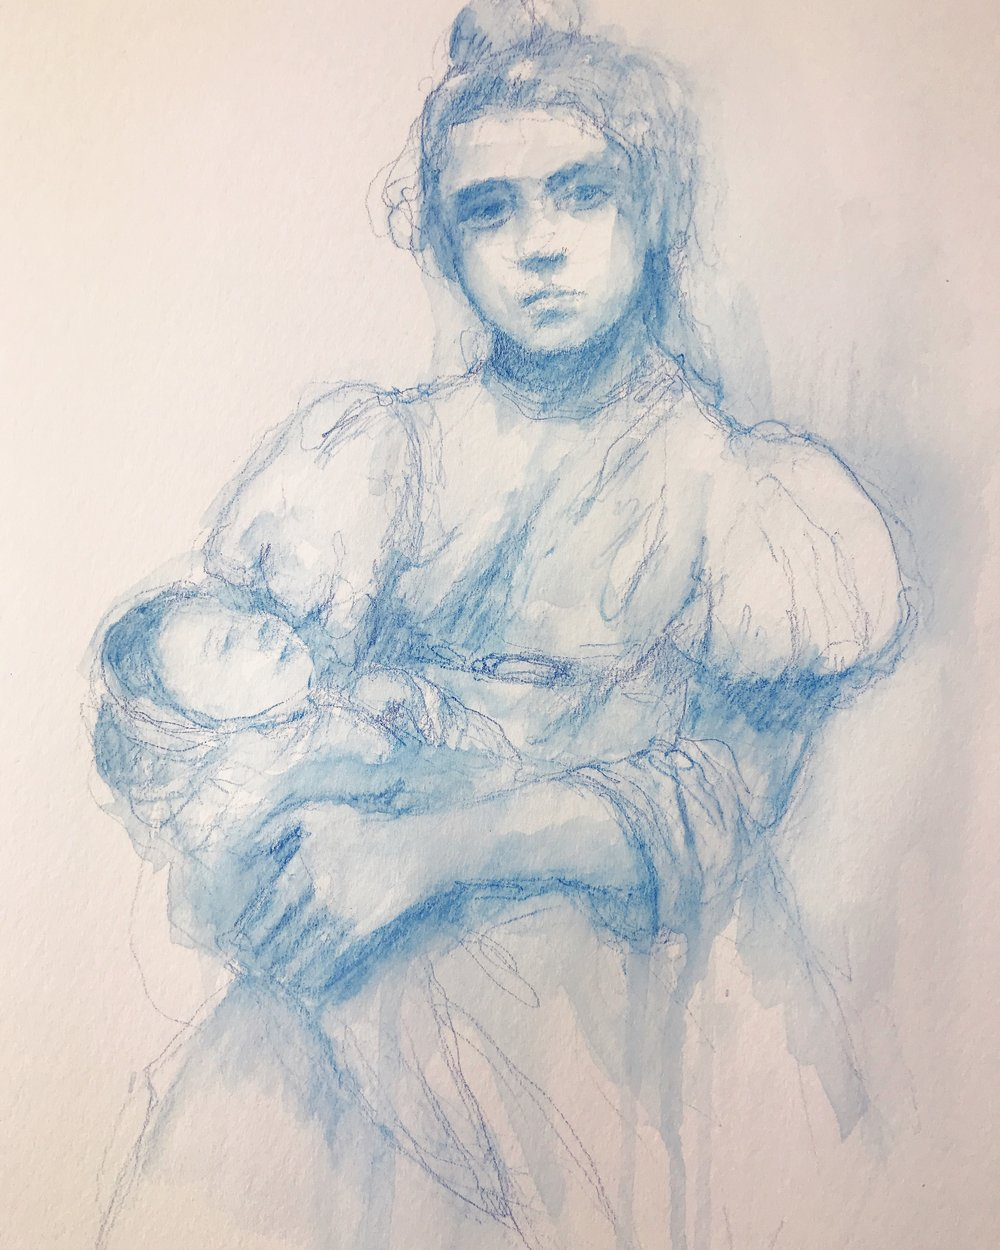 Blue sketching from historical images.